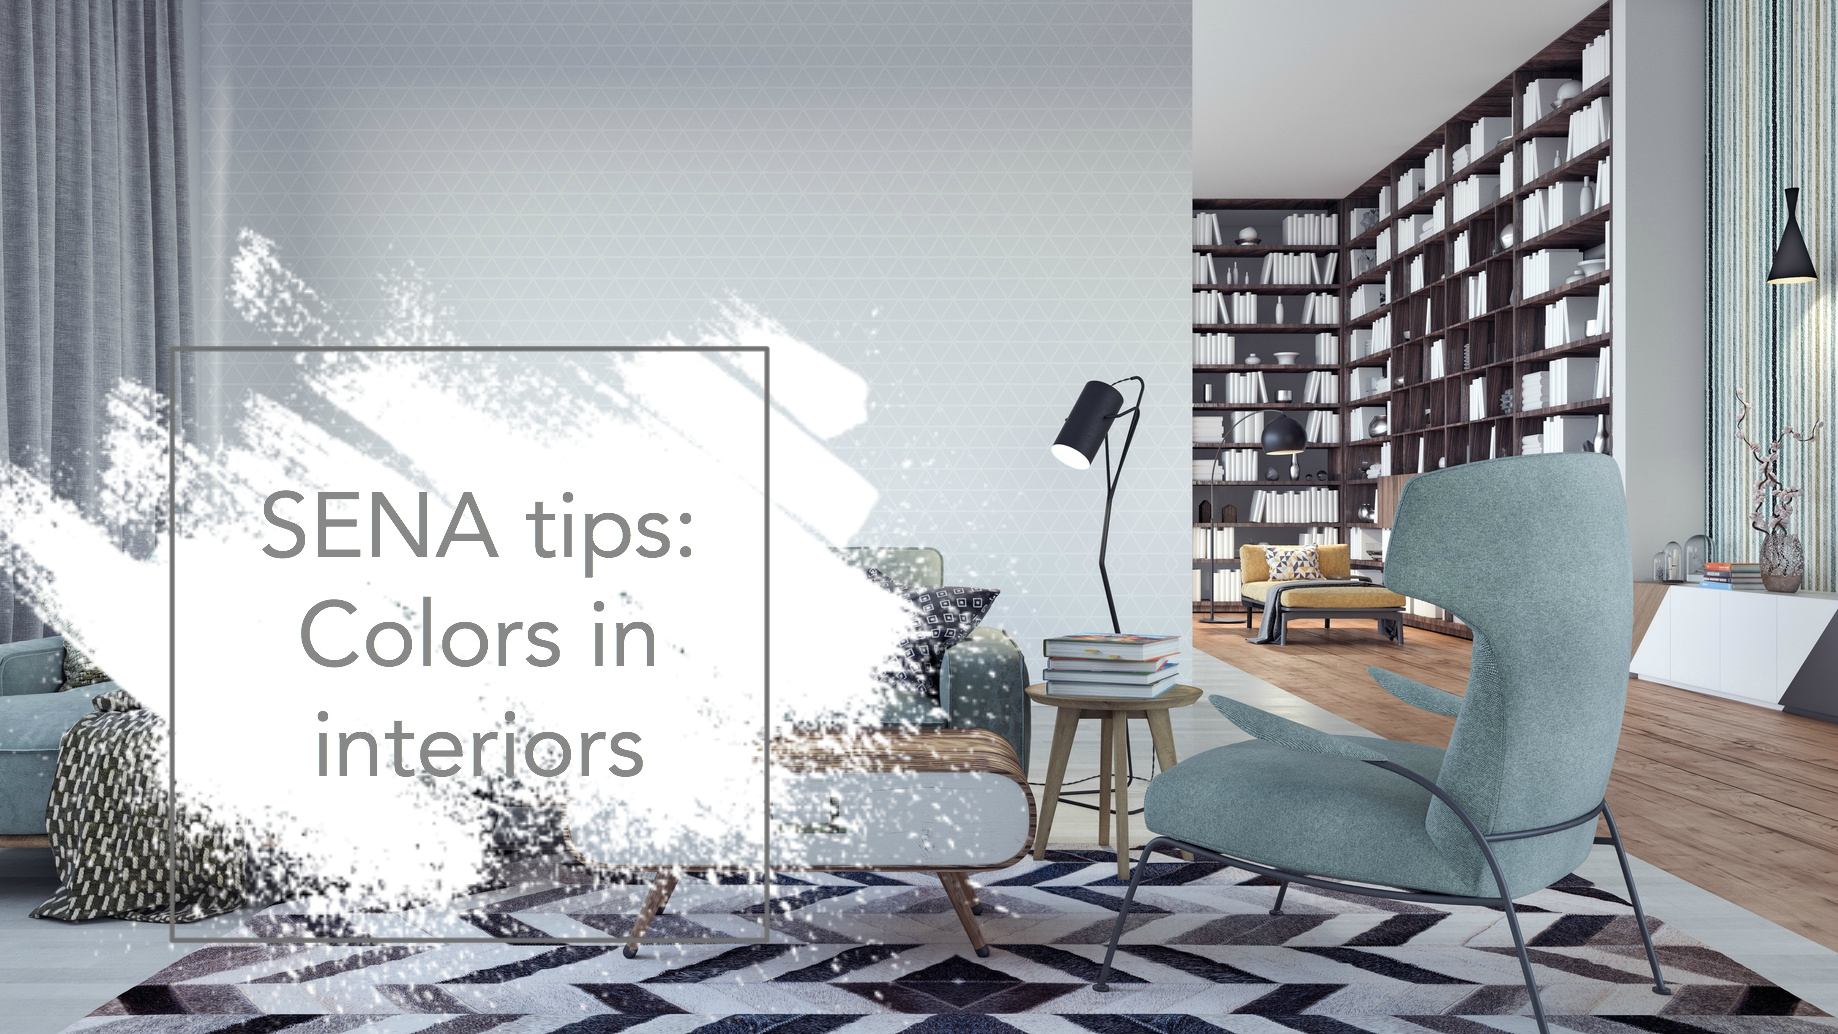 Colour in interiors, which will always be fashionable, part two